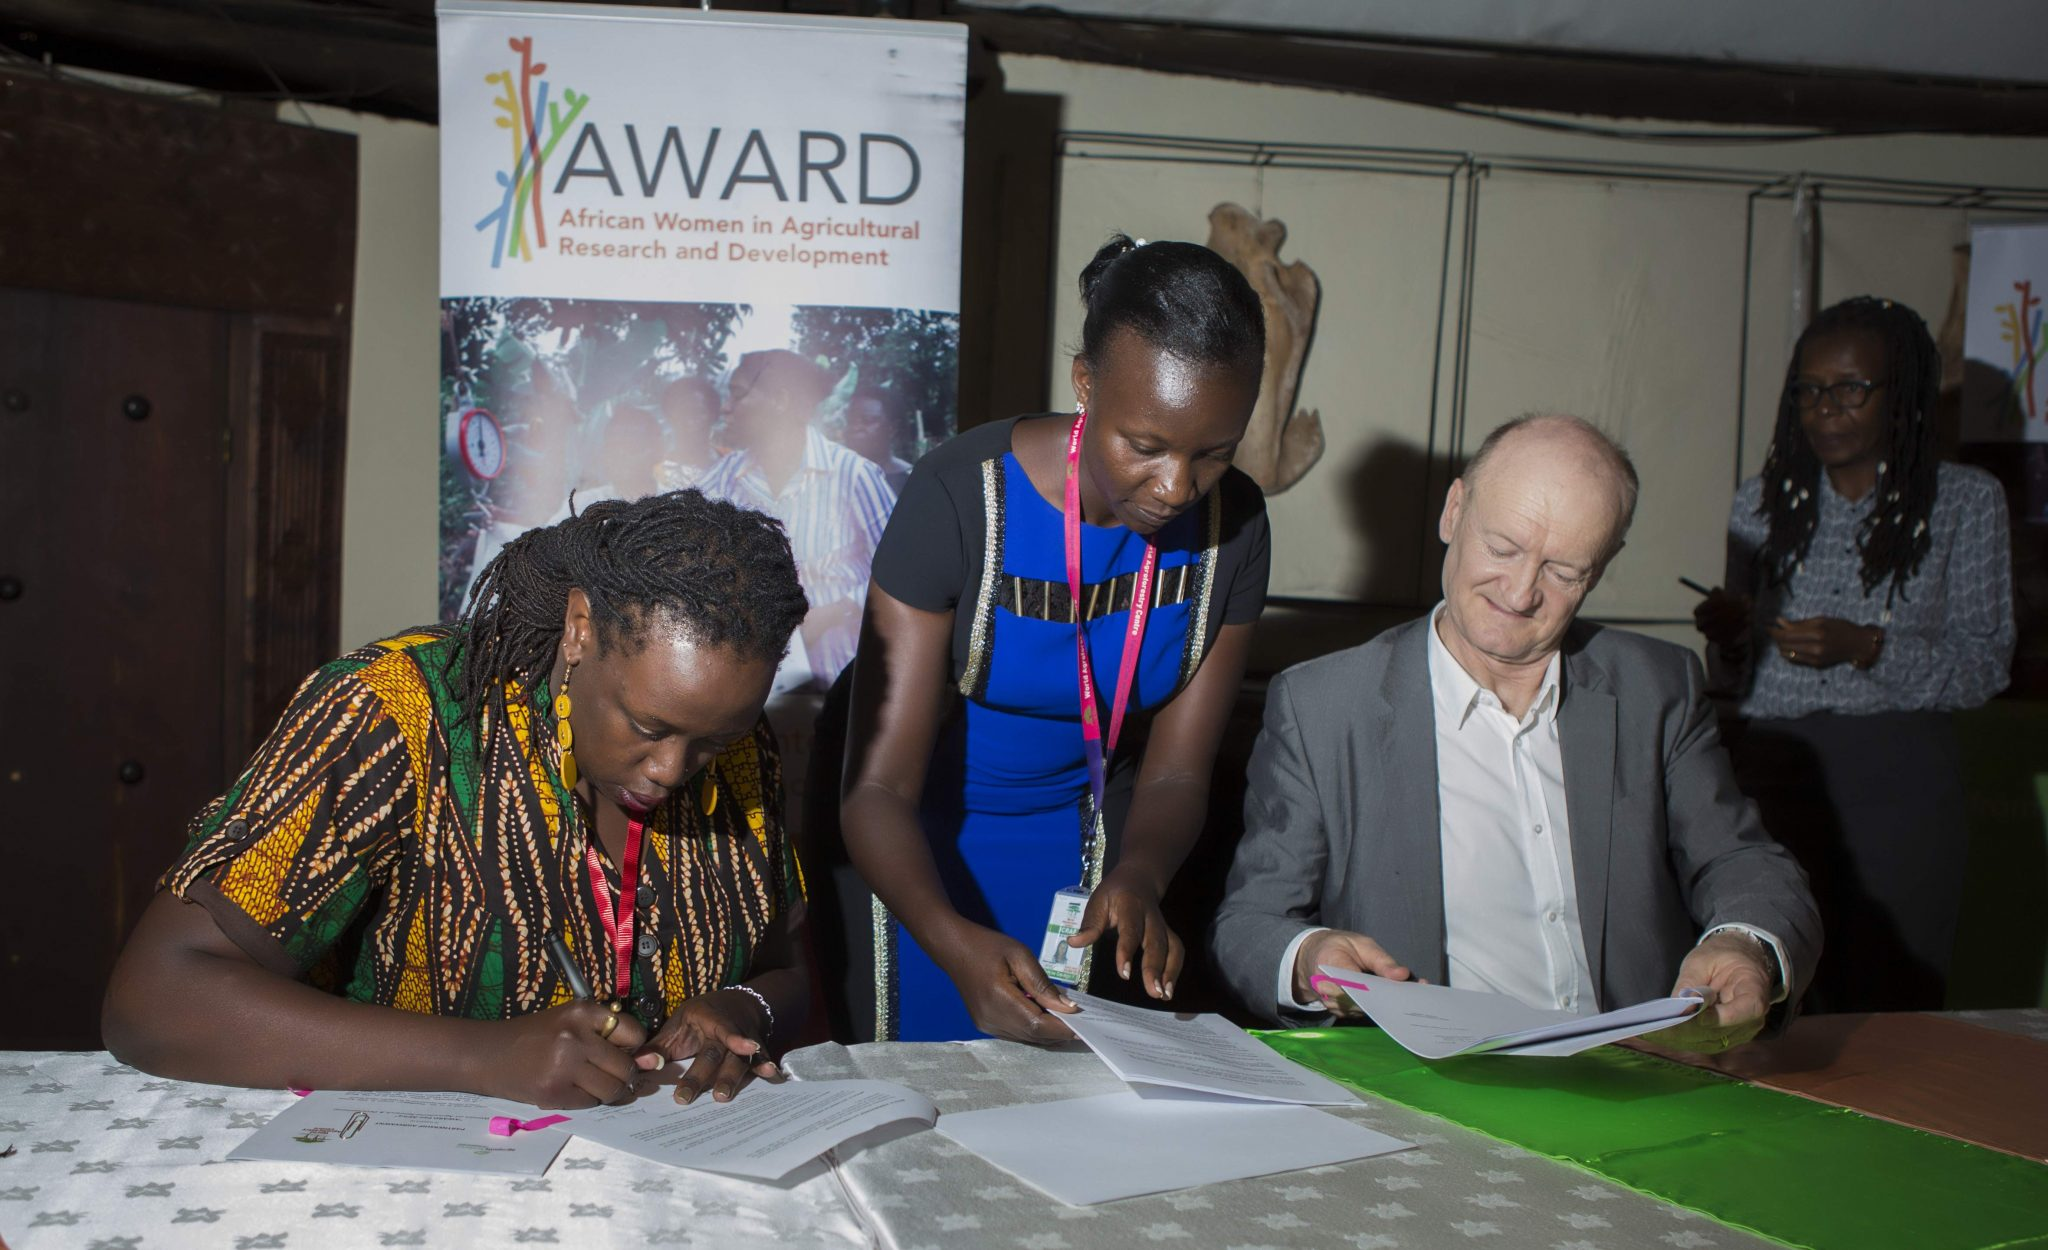 Dr.  Wanjiru Kamau-Rutenberg, Director of the Award Fellowships with Dr. Pascal Kosuth, Director, Agropolis Foundation signs the agreement document. Photo: Henry Owino/The AfricaPaper